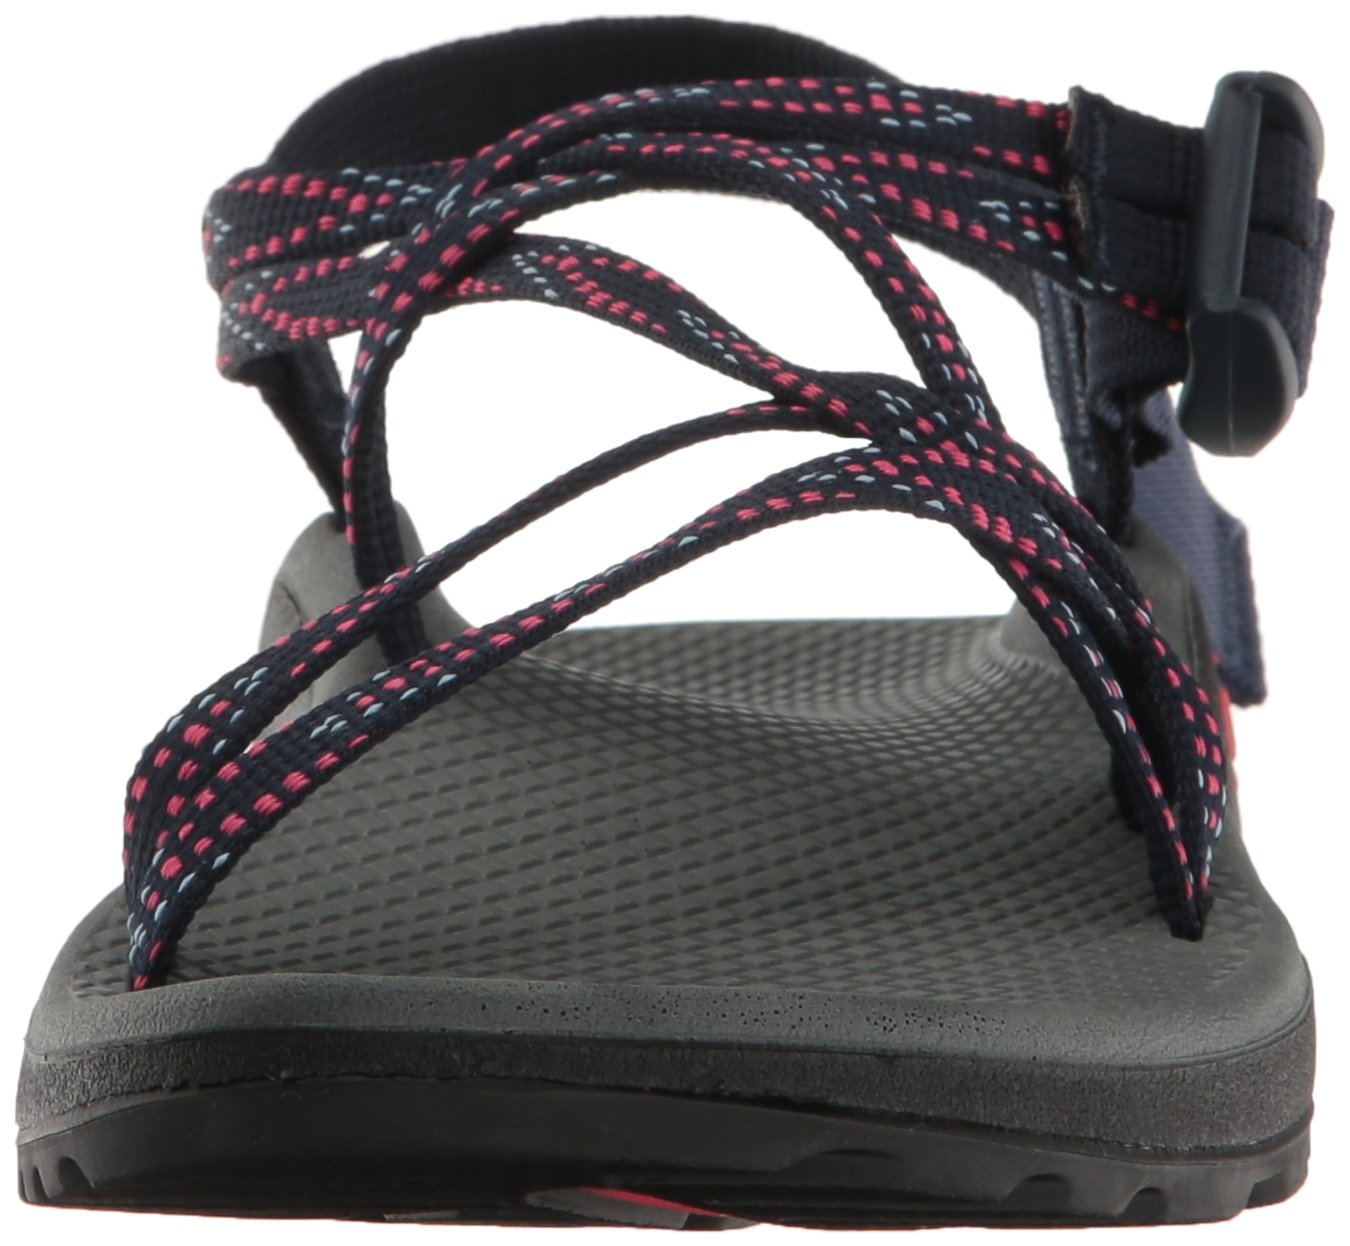 Chaco Women's Zcloud X Athletic Sandal B01H4XC9WC 8 M US|Action Blue